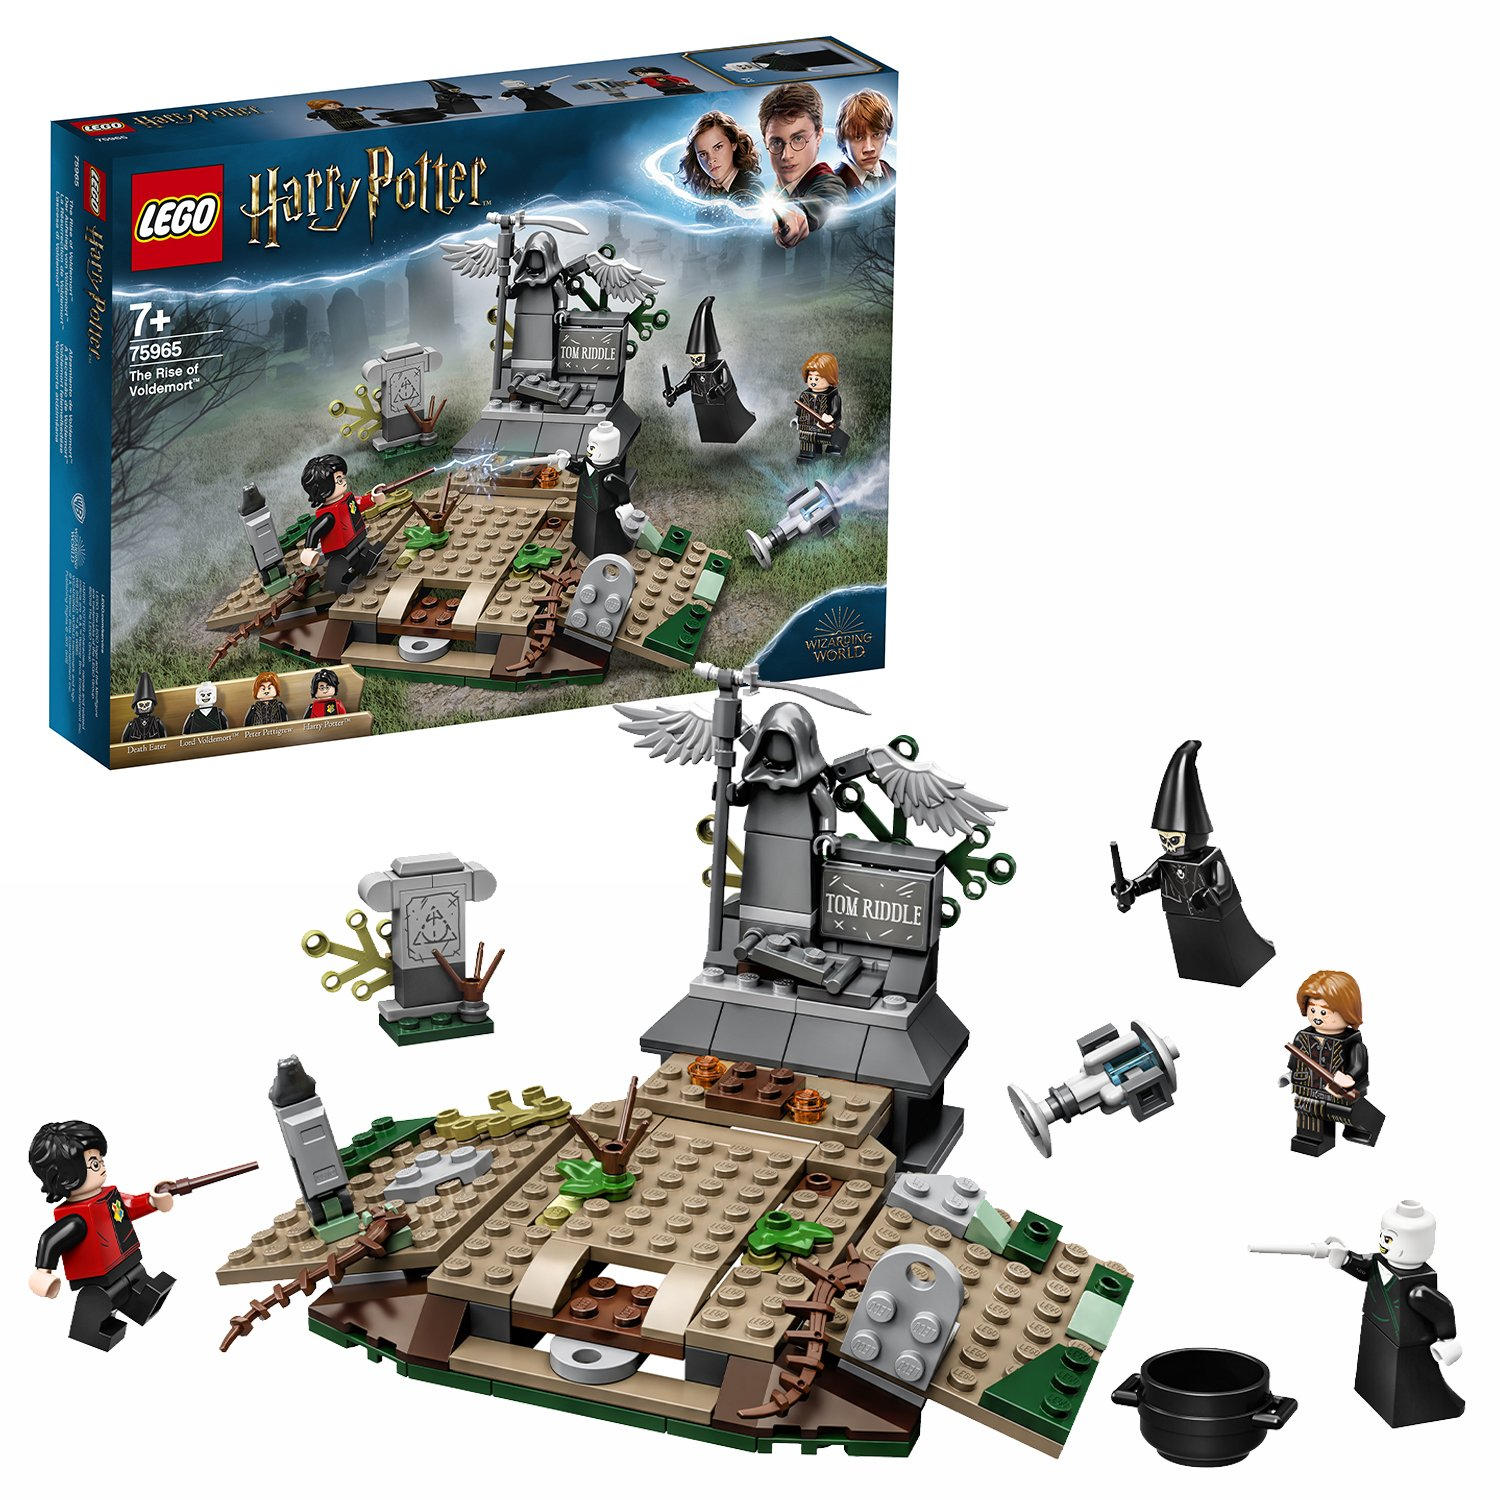 LEGO Harry Potter TM The Rise of Voldemort - 75965